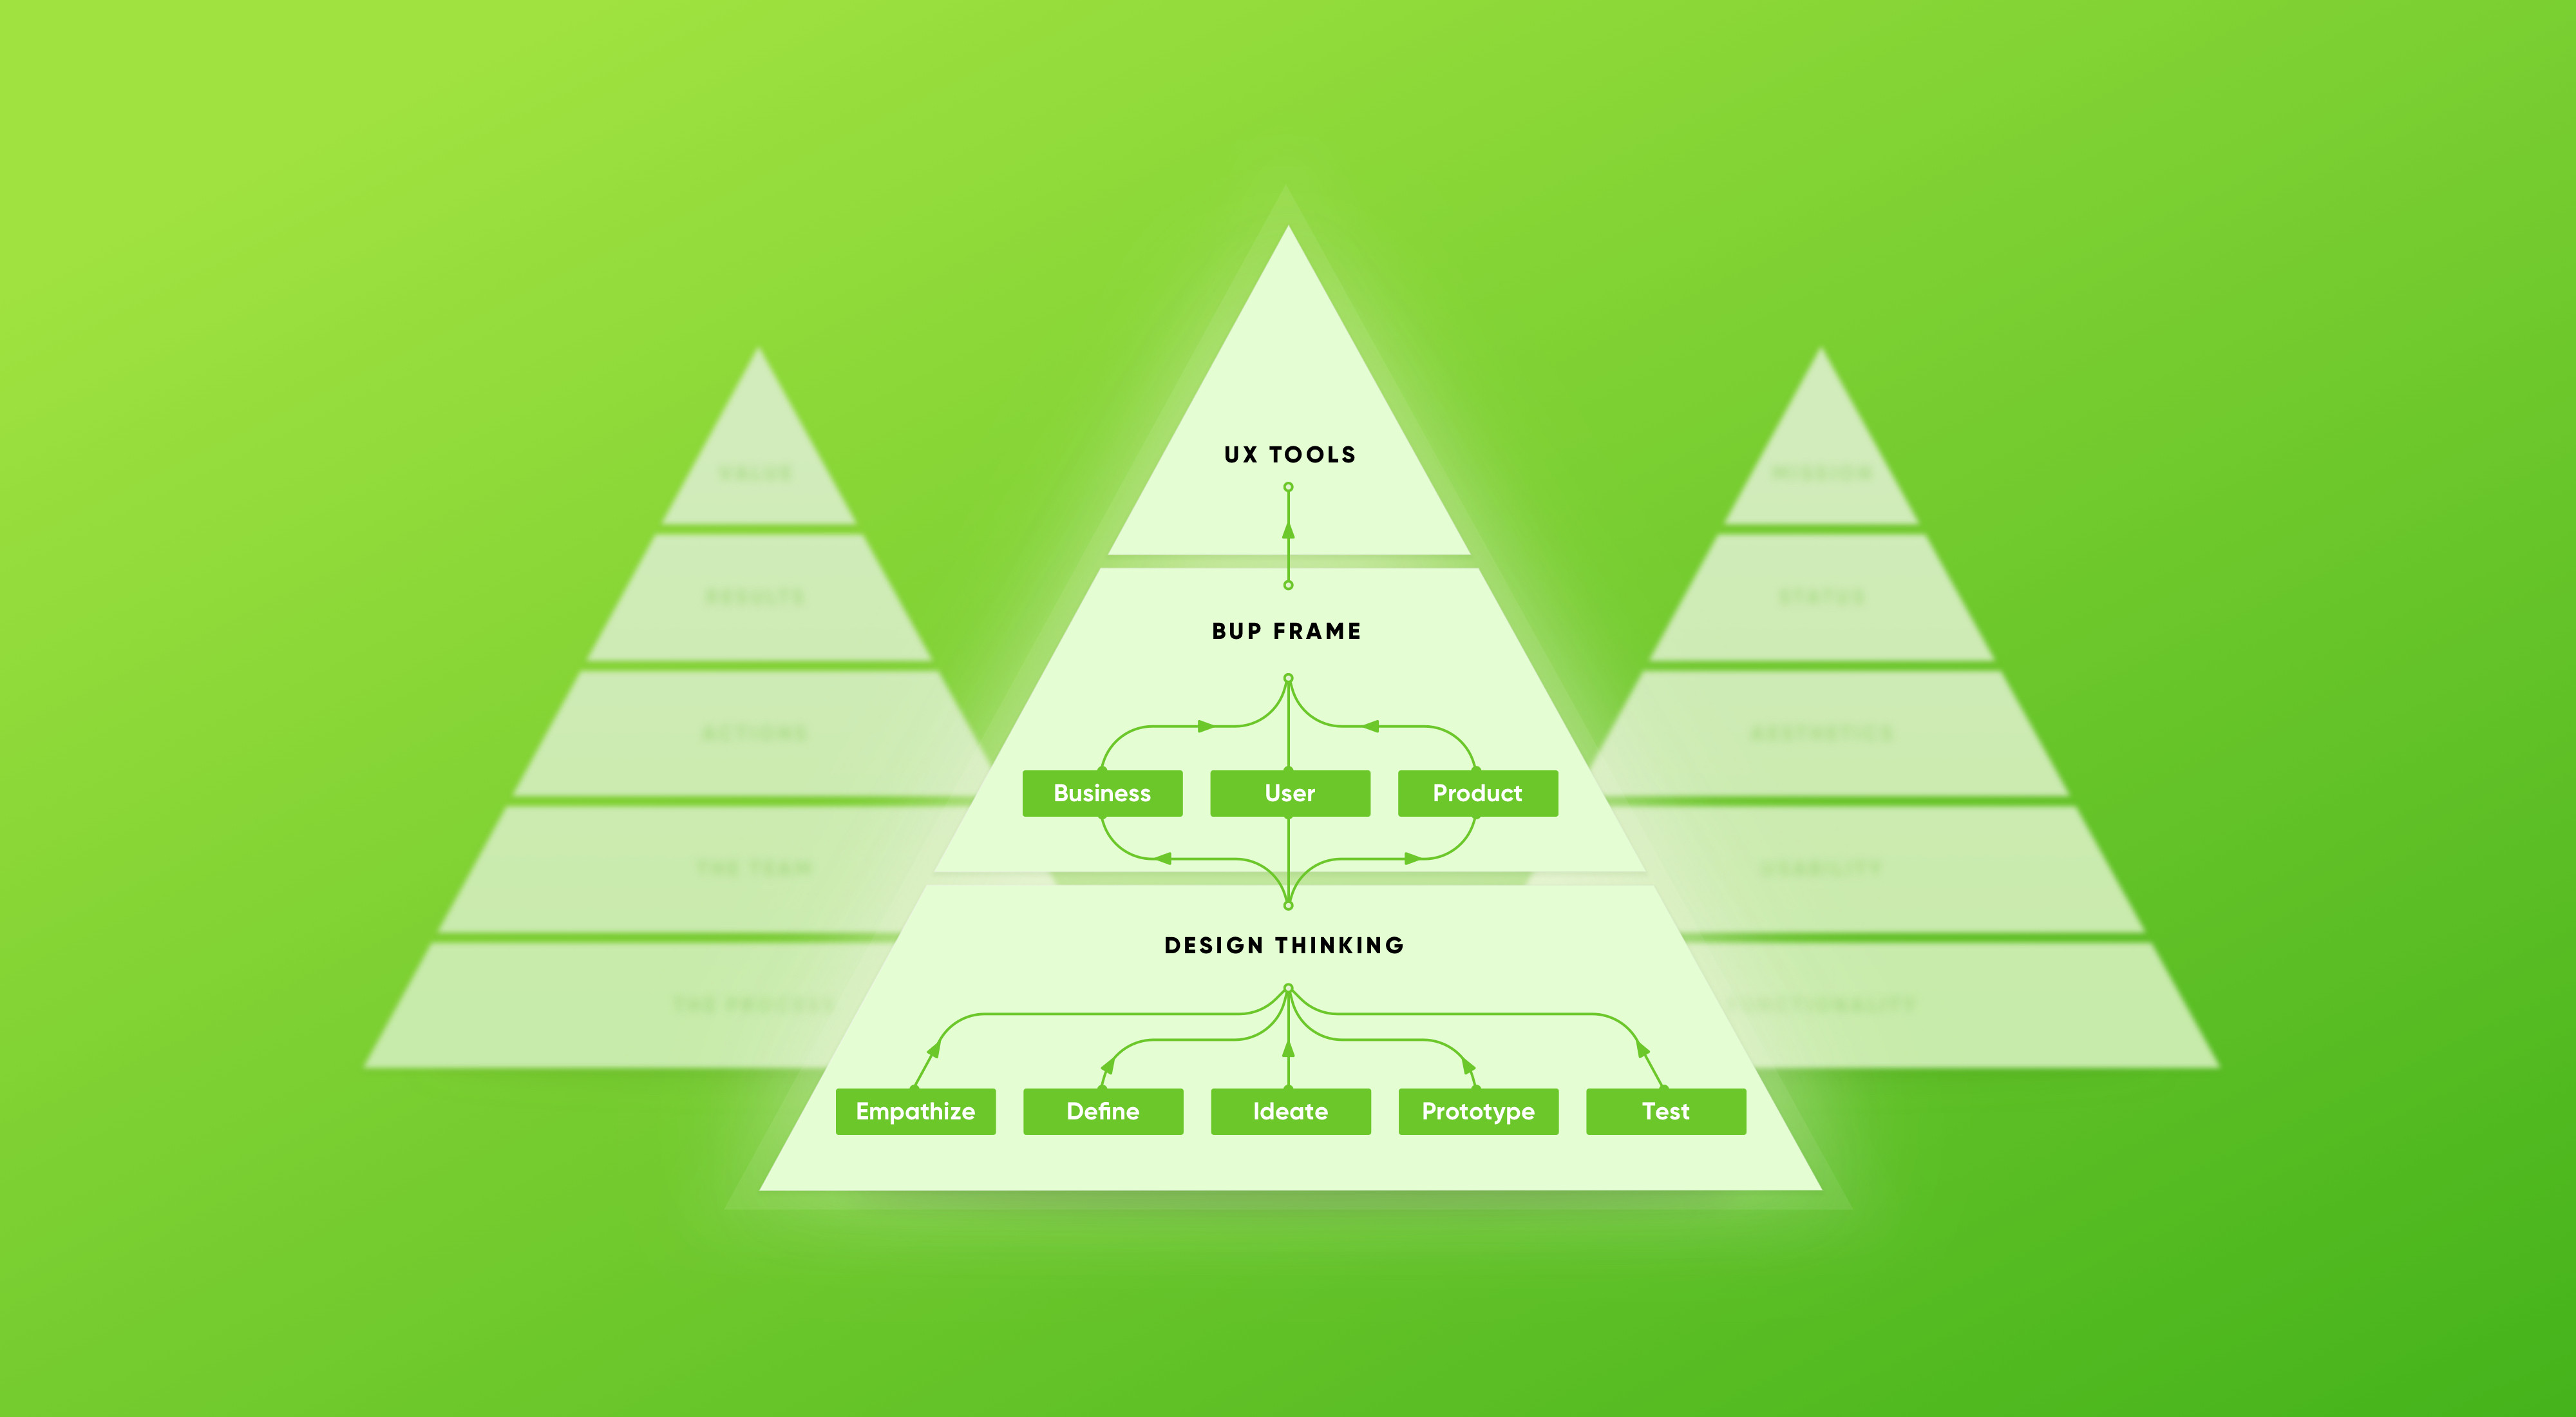 🎧 Financial UX Design Methodology: the Experience Pyramid